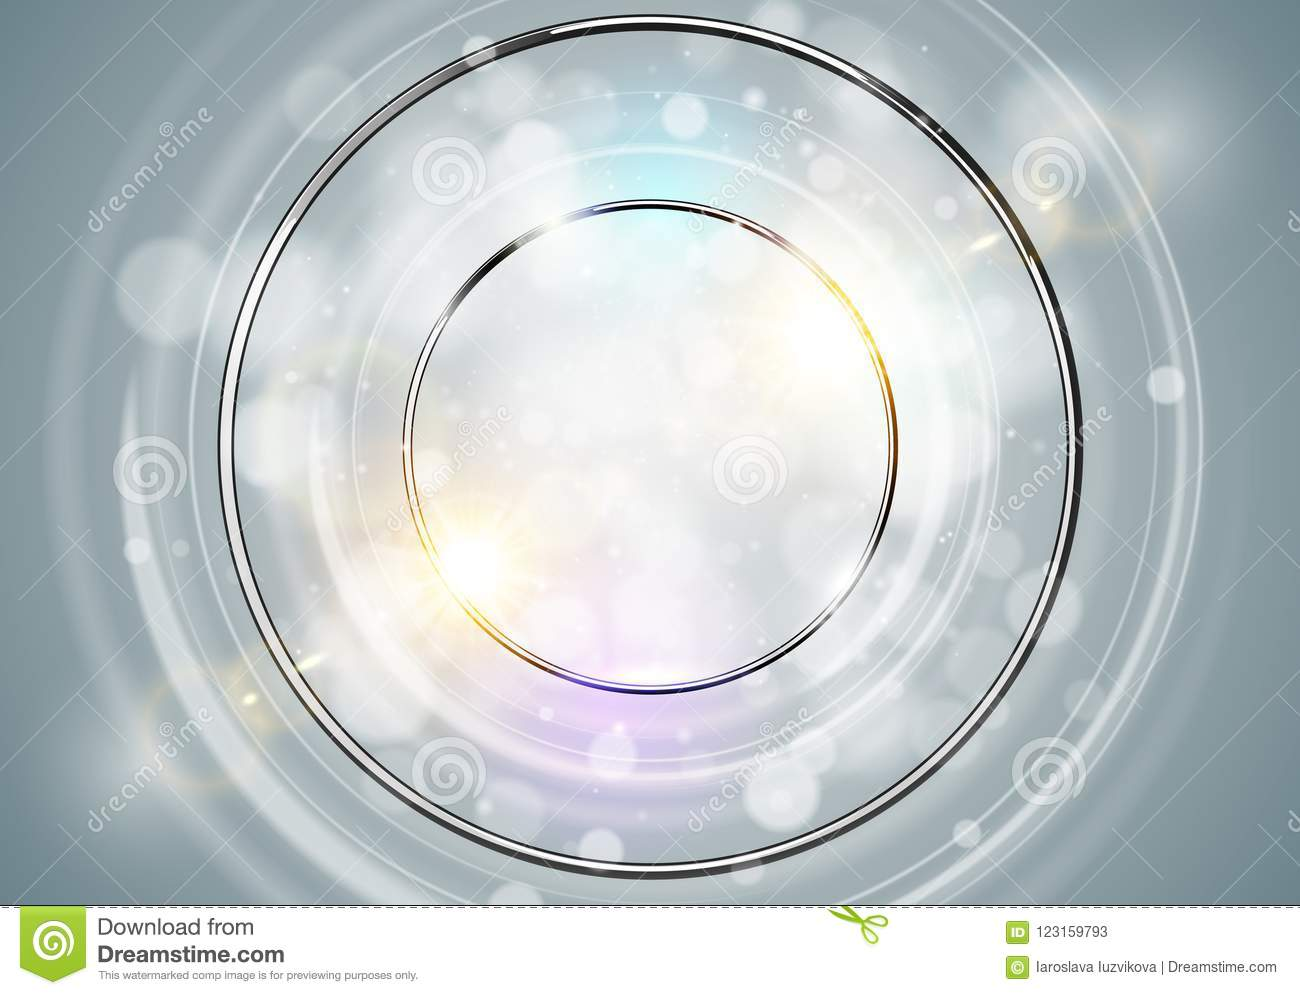 Abstract ring background. Metal chrome shine round frame with light circles and spark light effect. Vector sparkling glowing